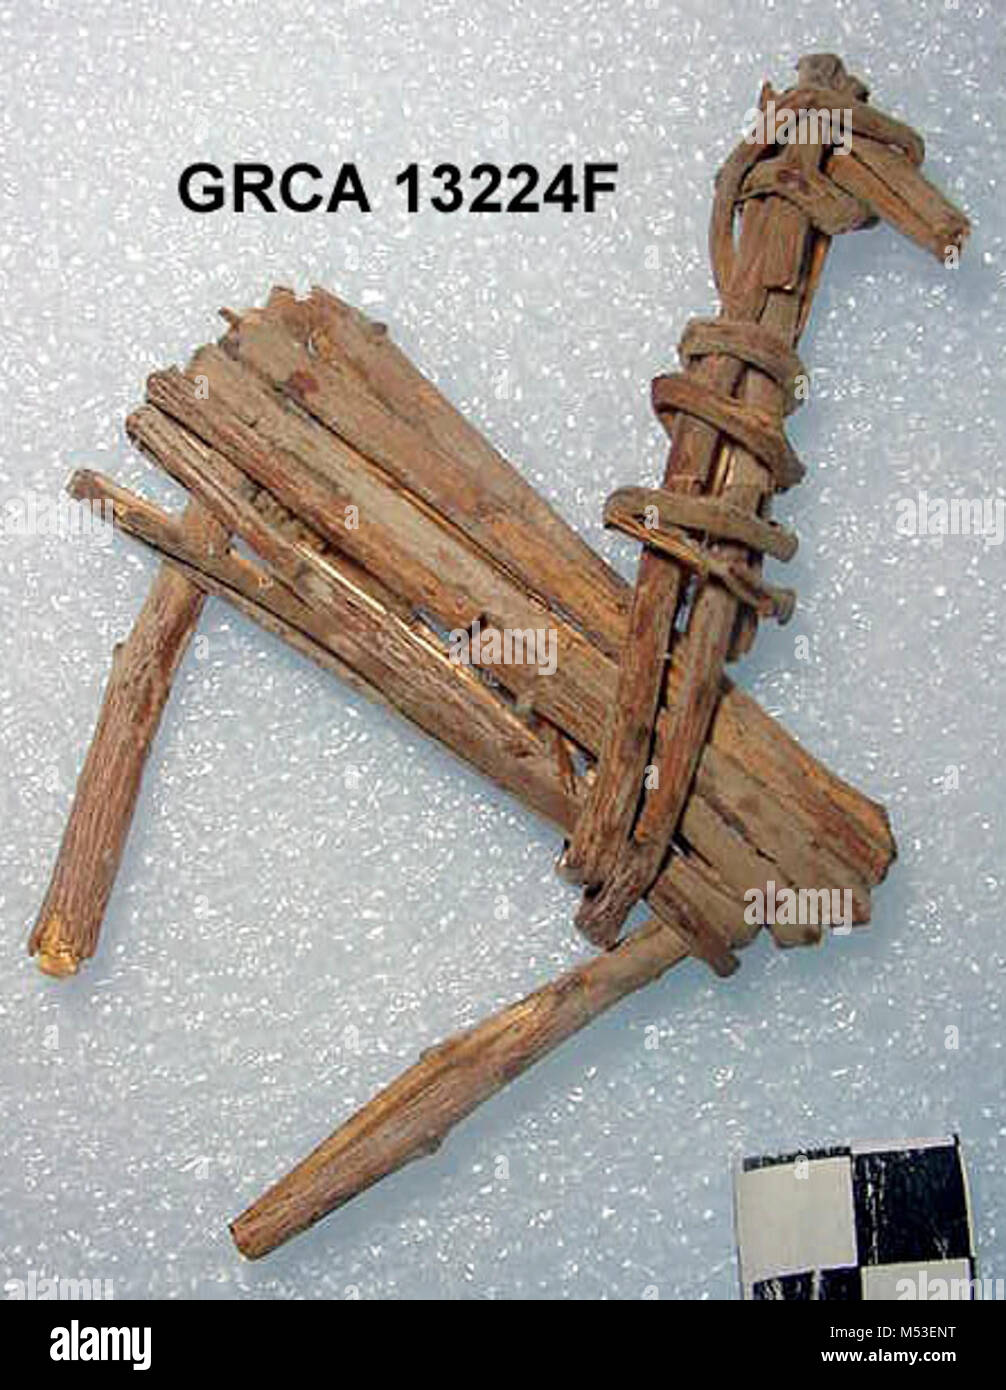 Split-Twig Figurine GRCAg. Some of the most facinating artifacts found here in the Grand Canyon are split-twig figurines. - Stock Image